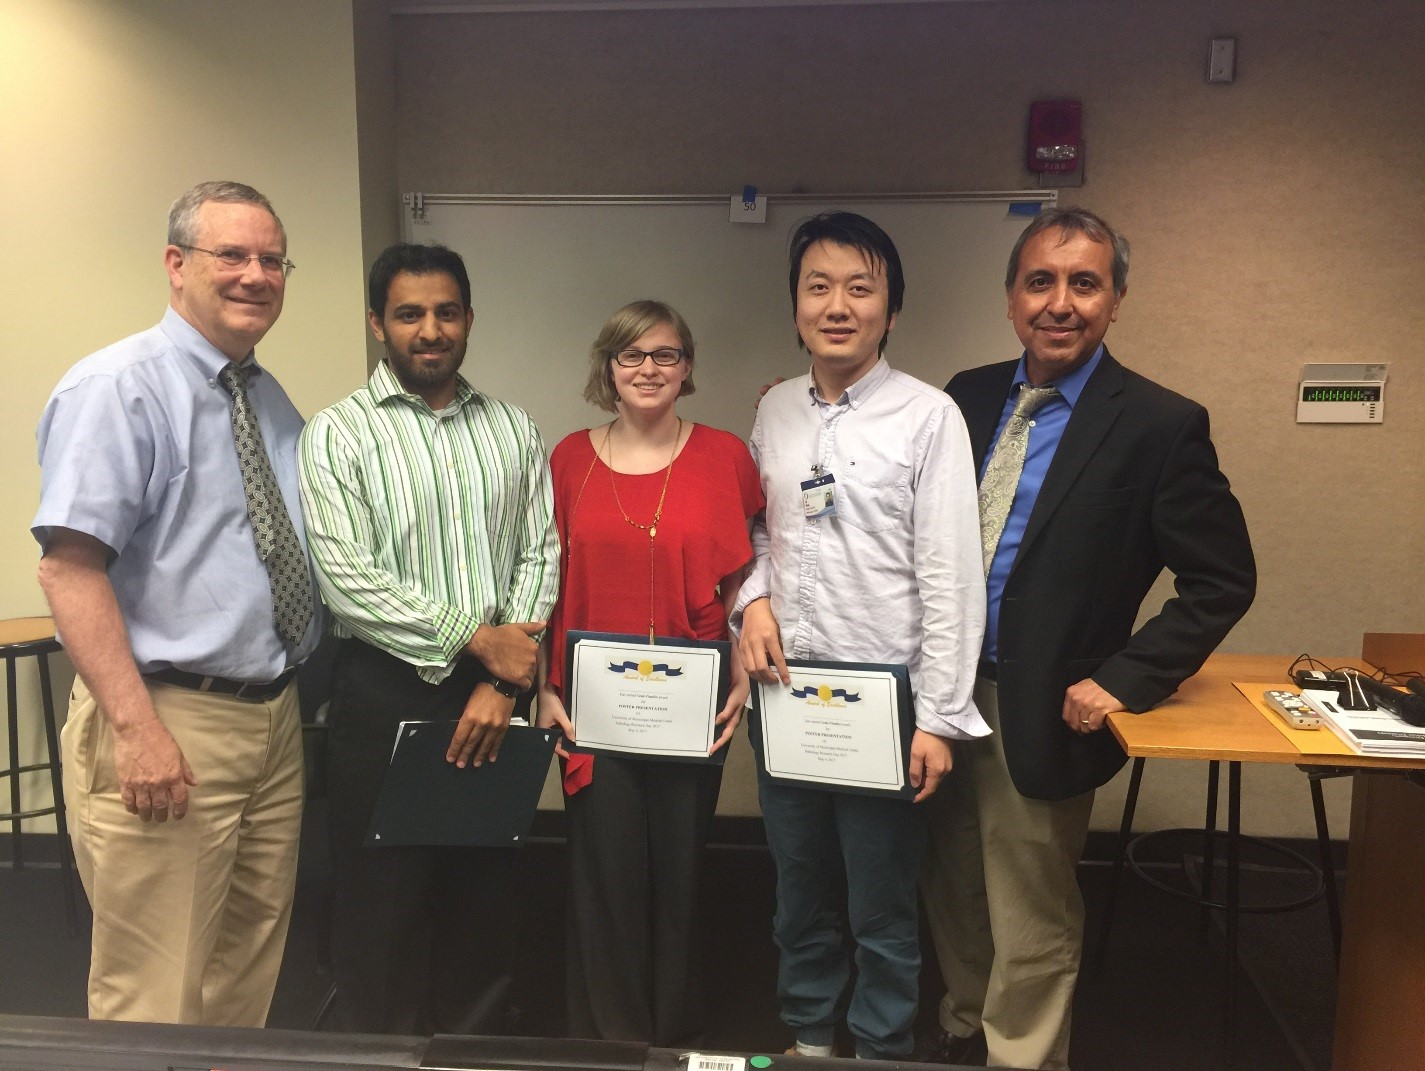 Brodell, left, and Gomez, right, visit with graduate students participating in the event, from left, Nasir Butt, Kathryn Hellman and Lin Wang.